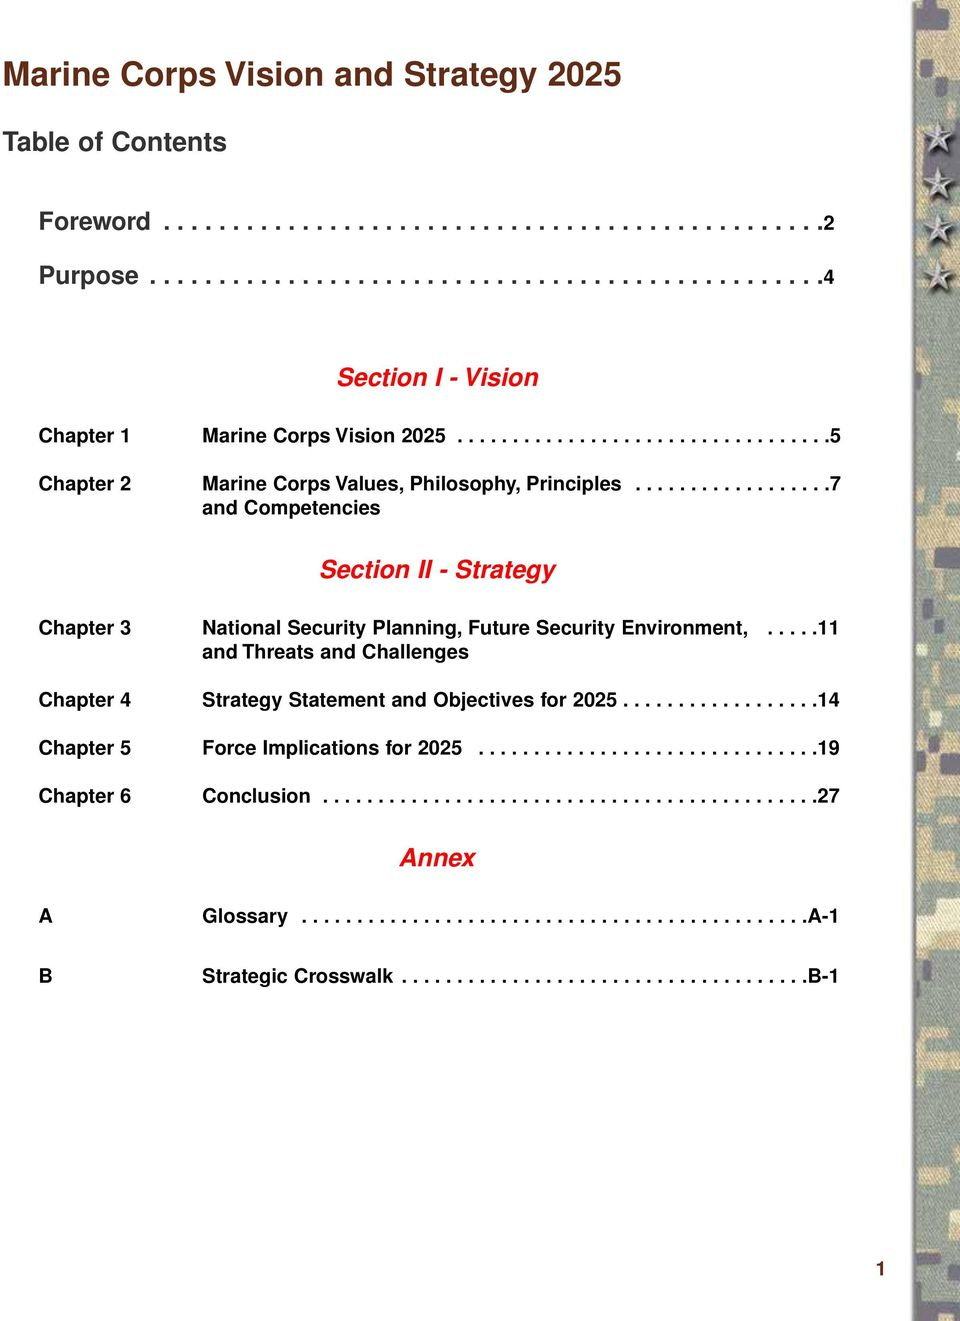 ....11 and Threats and Challenges Chapter 4 Strategy Statement and Objectives for 2025..................14 Chapter 5 Force Implications for 2025...............................19 Chapter 6 Conclusion.